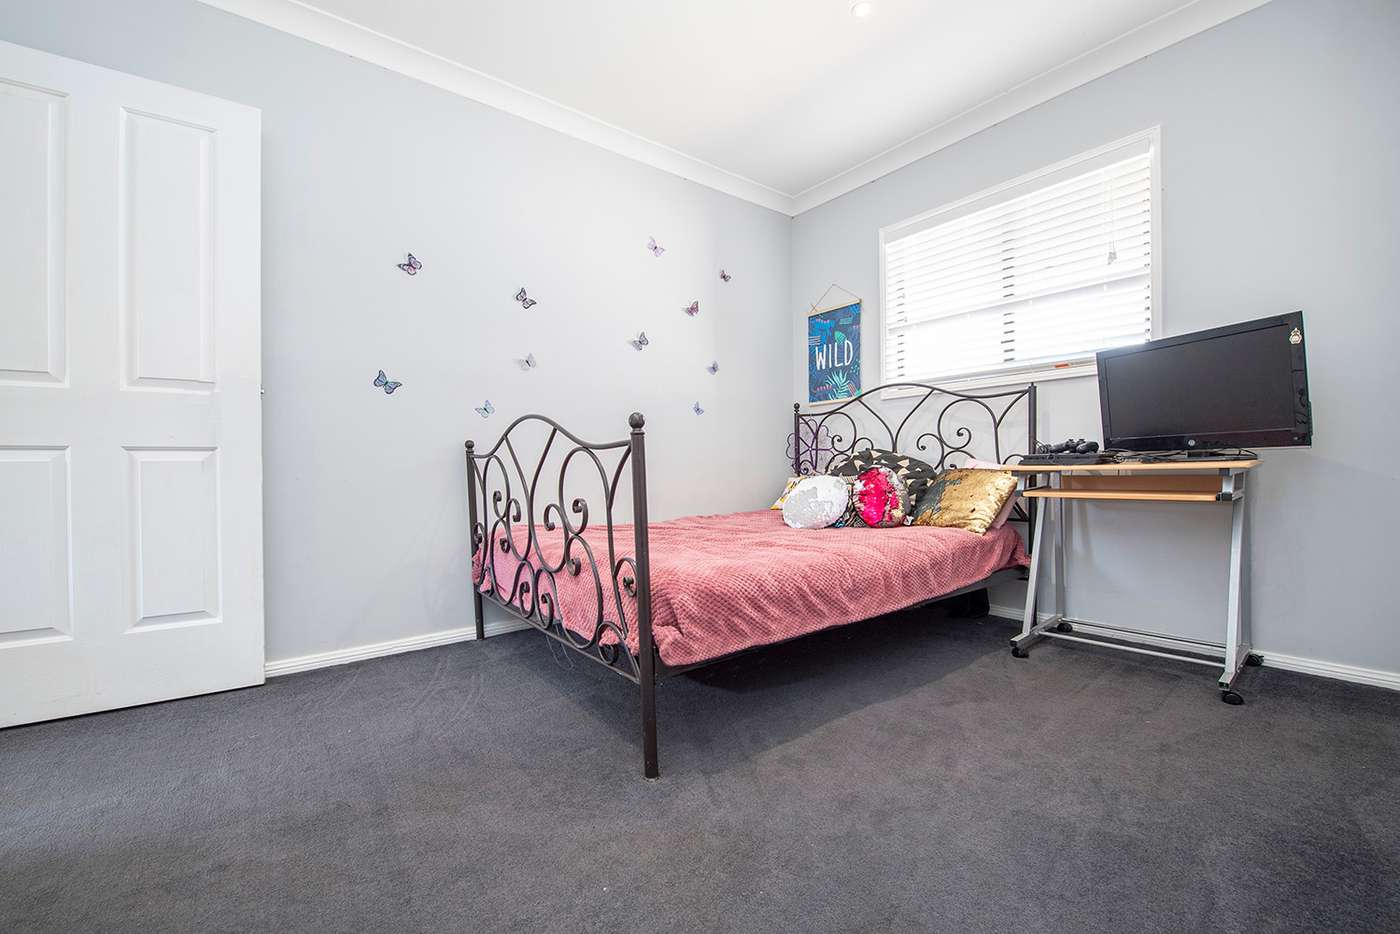 Seventh view of Homely house listing, 36 Virginia Street, Denman NSW 2328